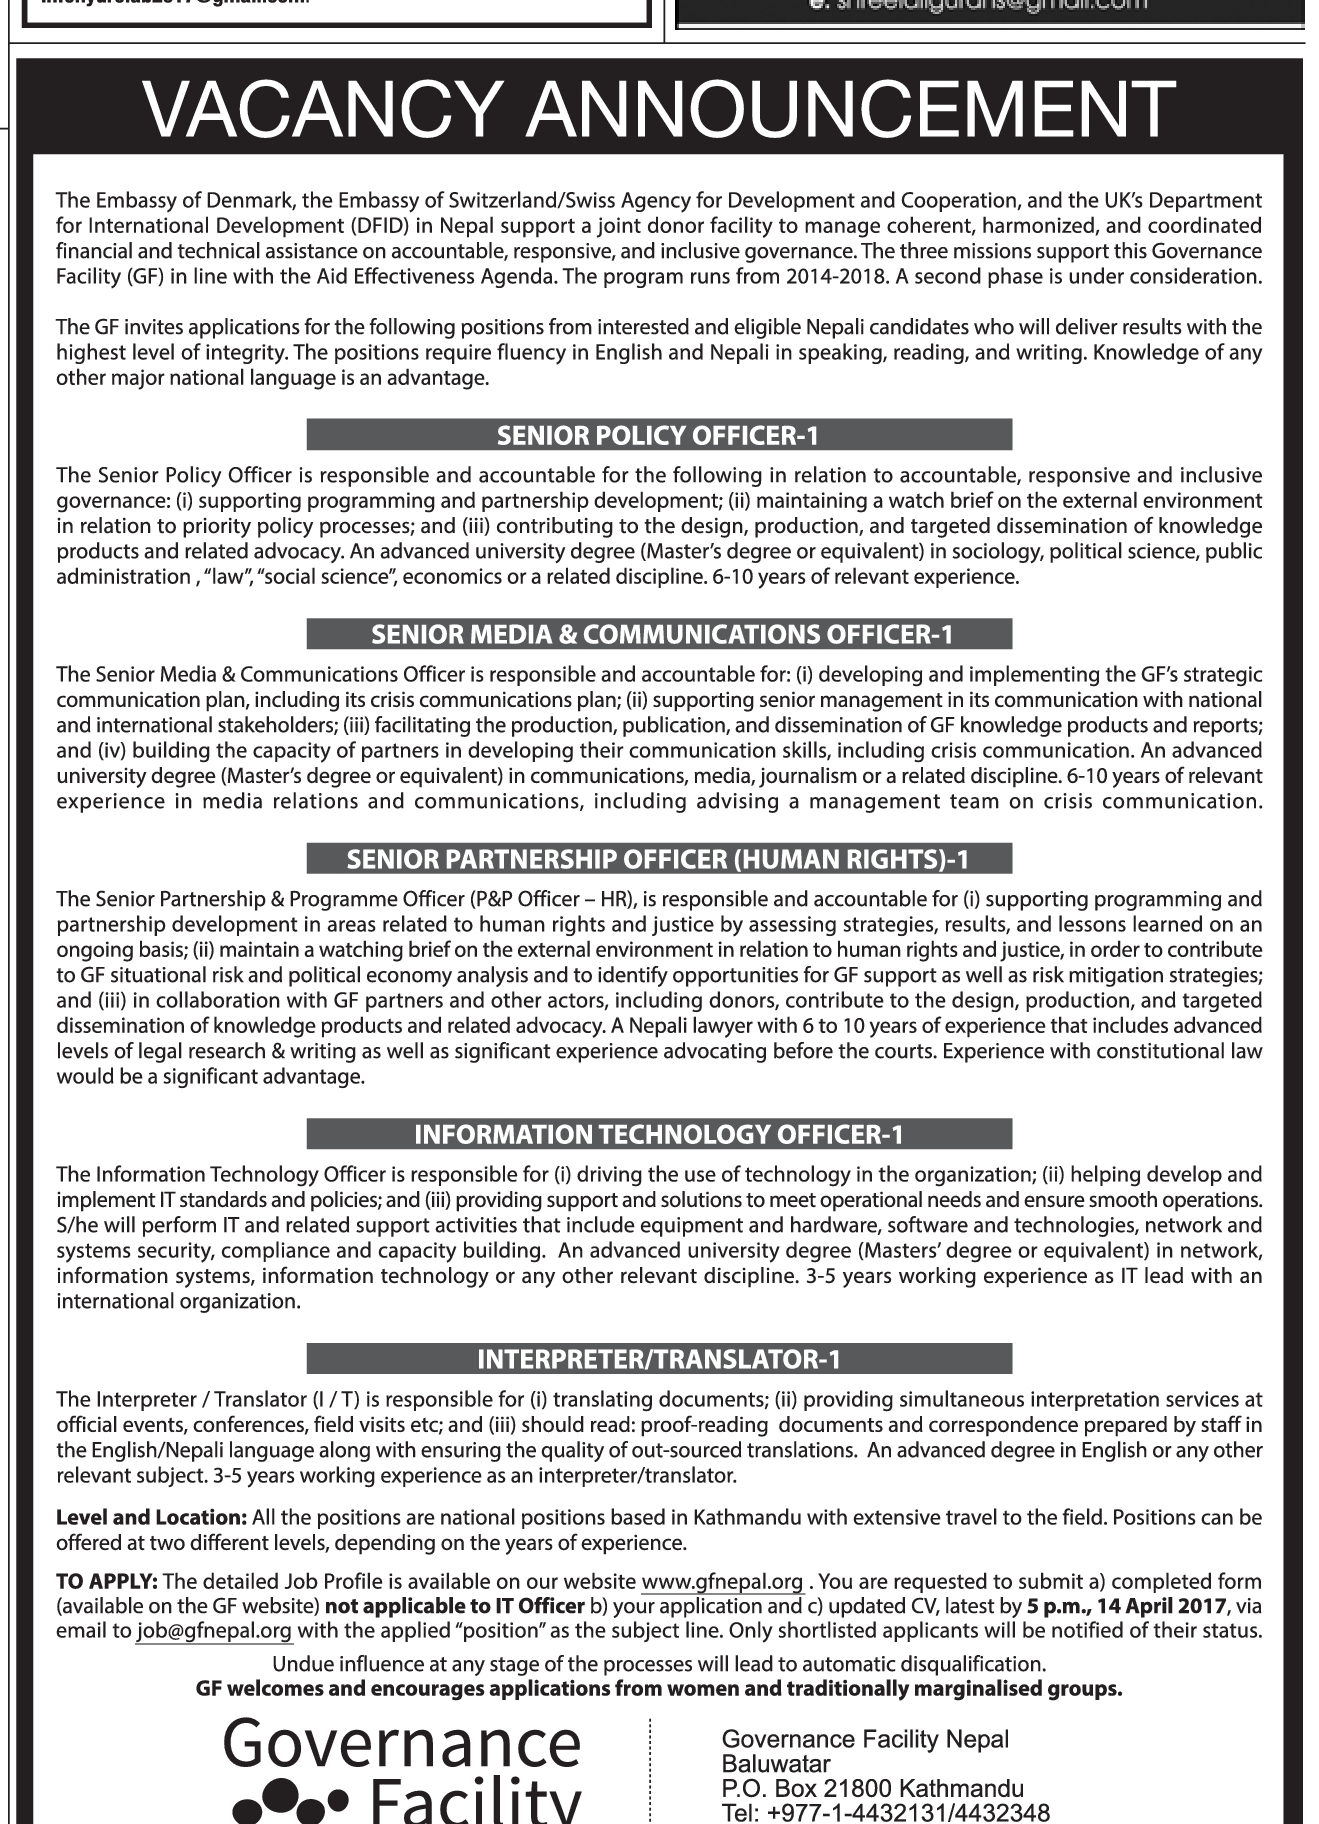 Job Vacancies In Denmark Embassy